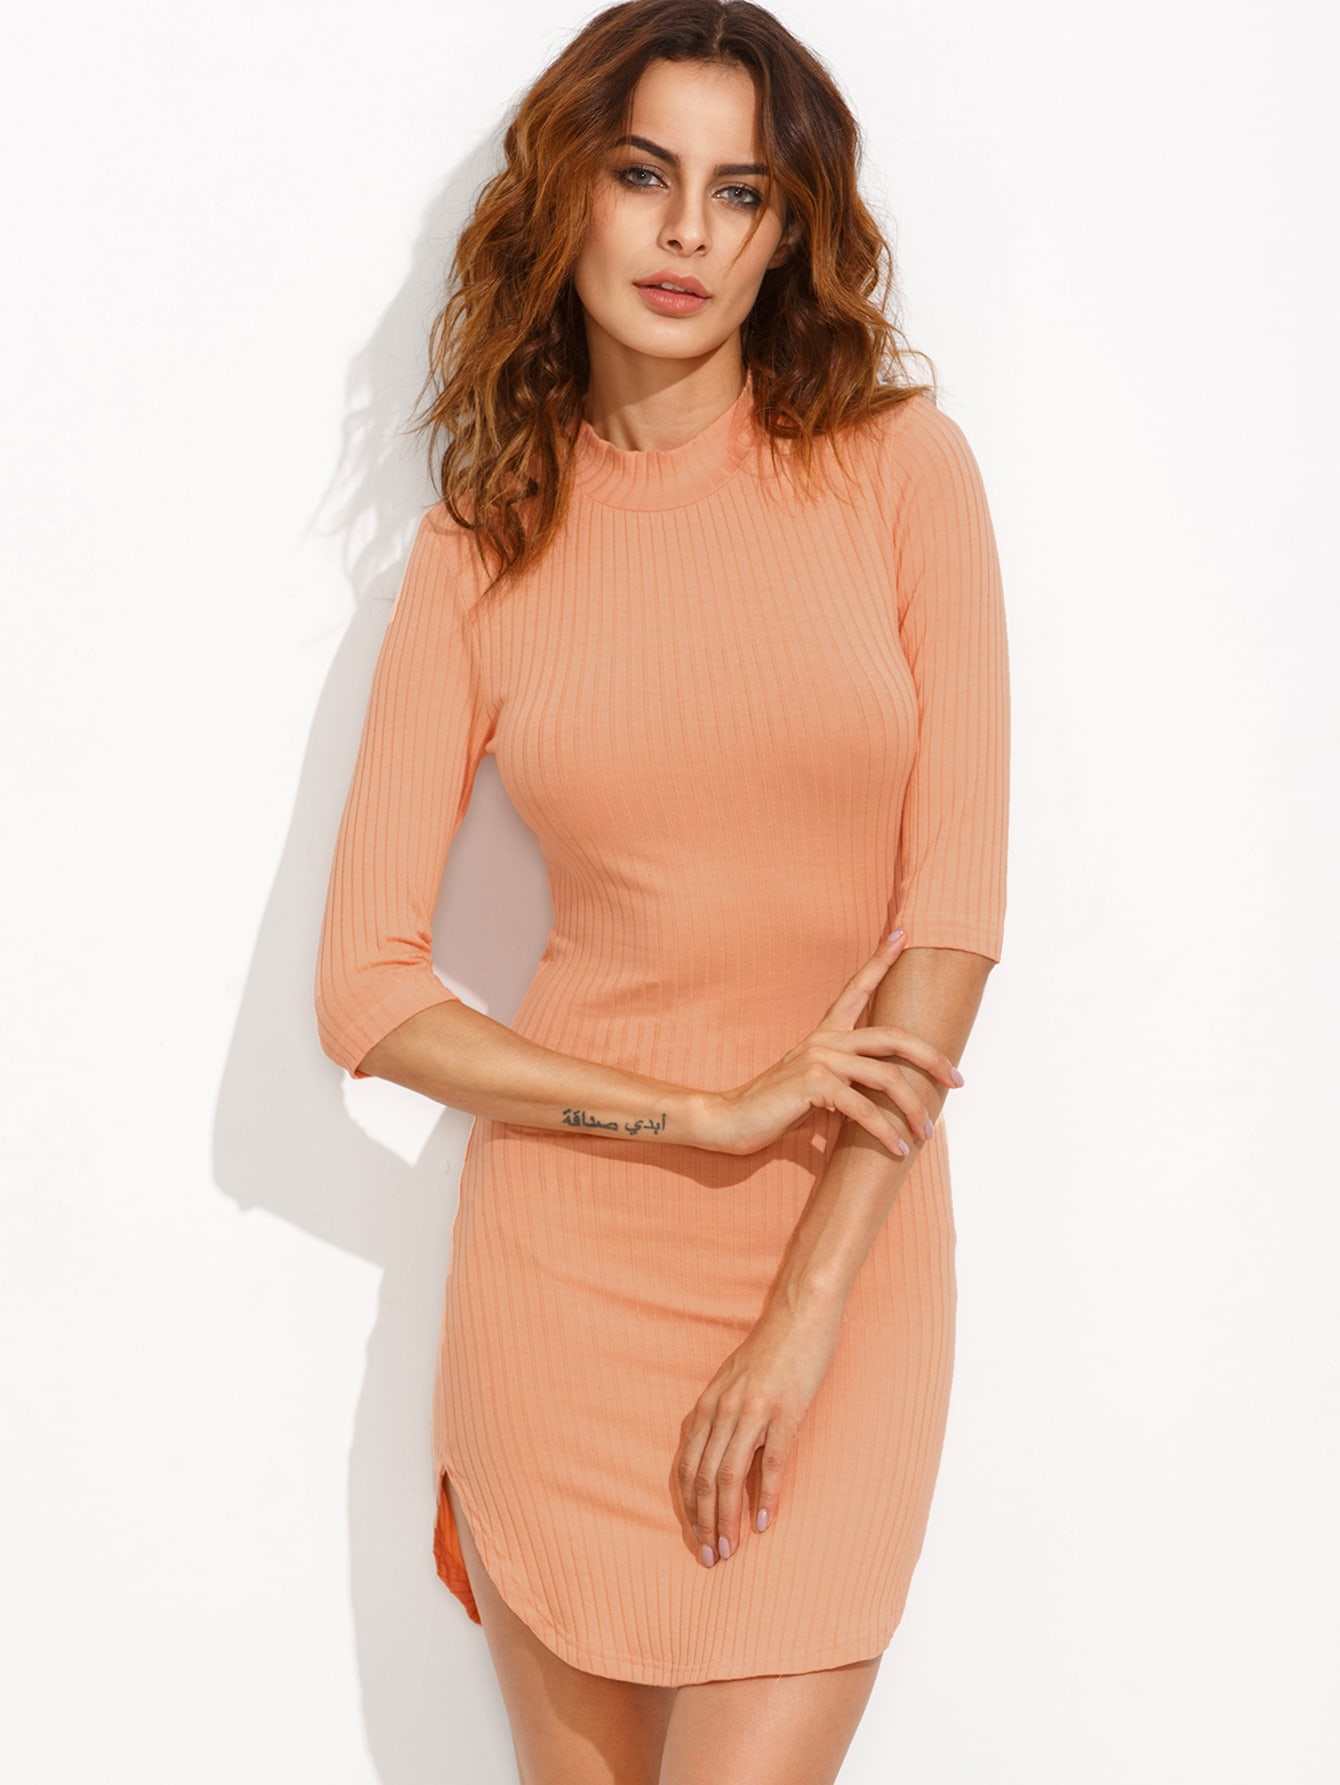 Orange Mock Neck Curved Hem Ribbed Sheath Dress dress160811707